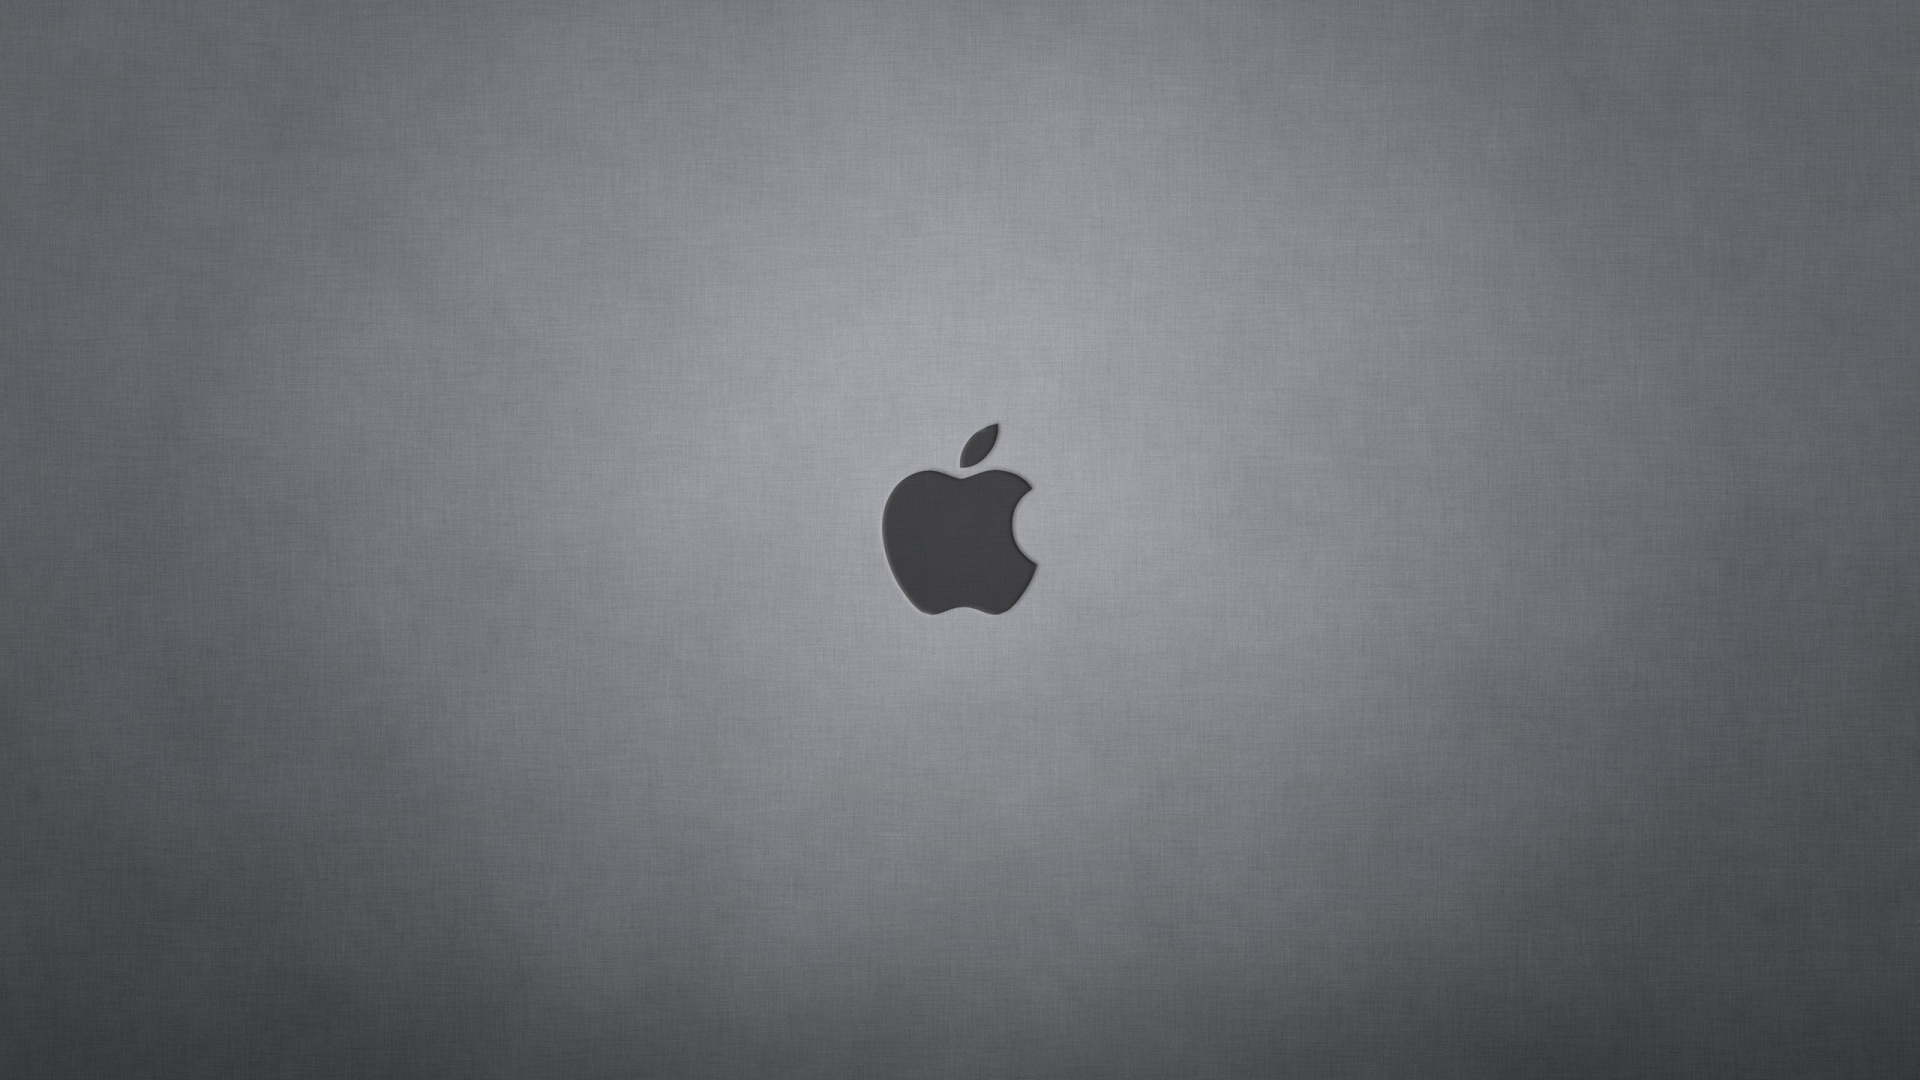 ideas about Mac Wallpaper on Pinterest  Macbook wallpaper 1920x1080